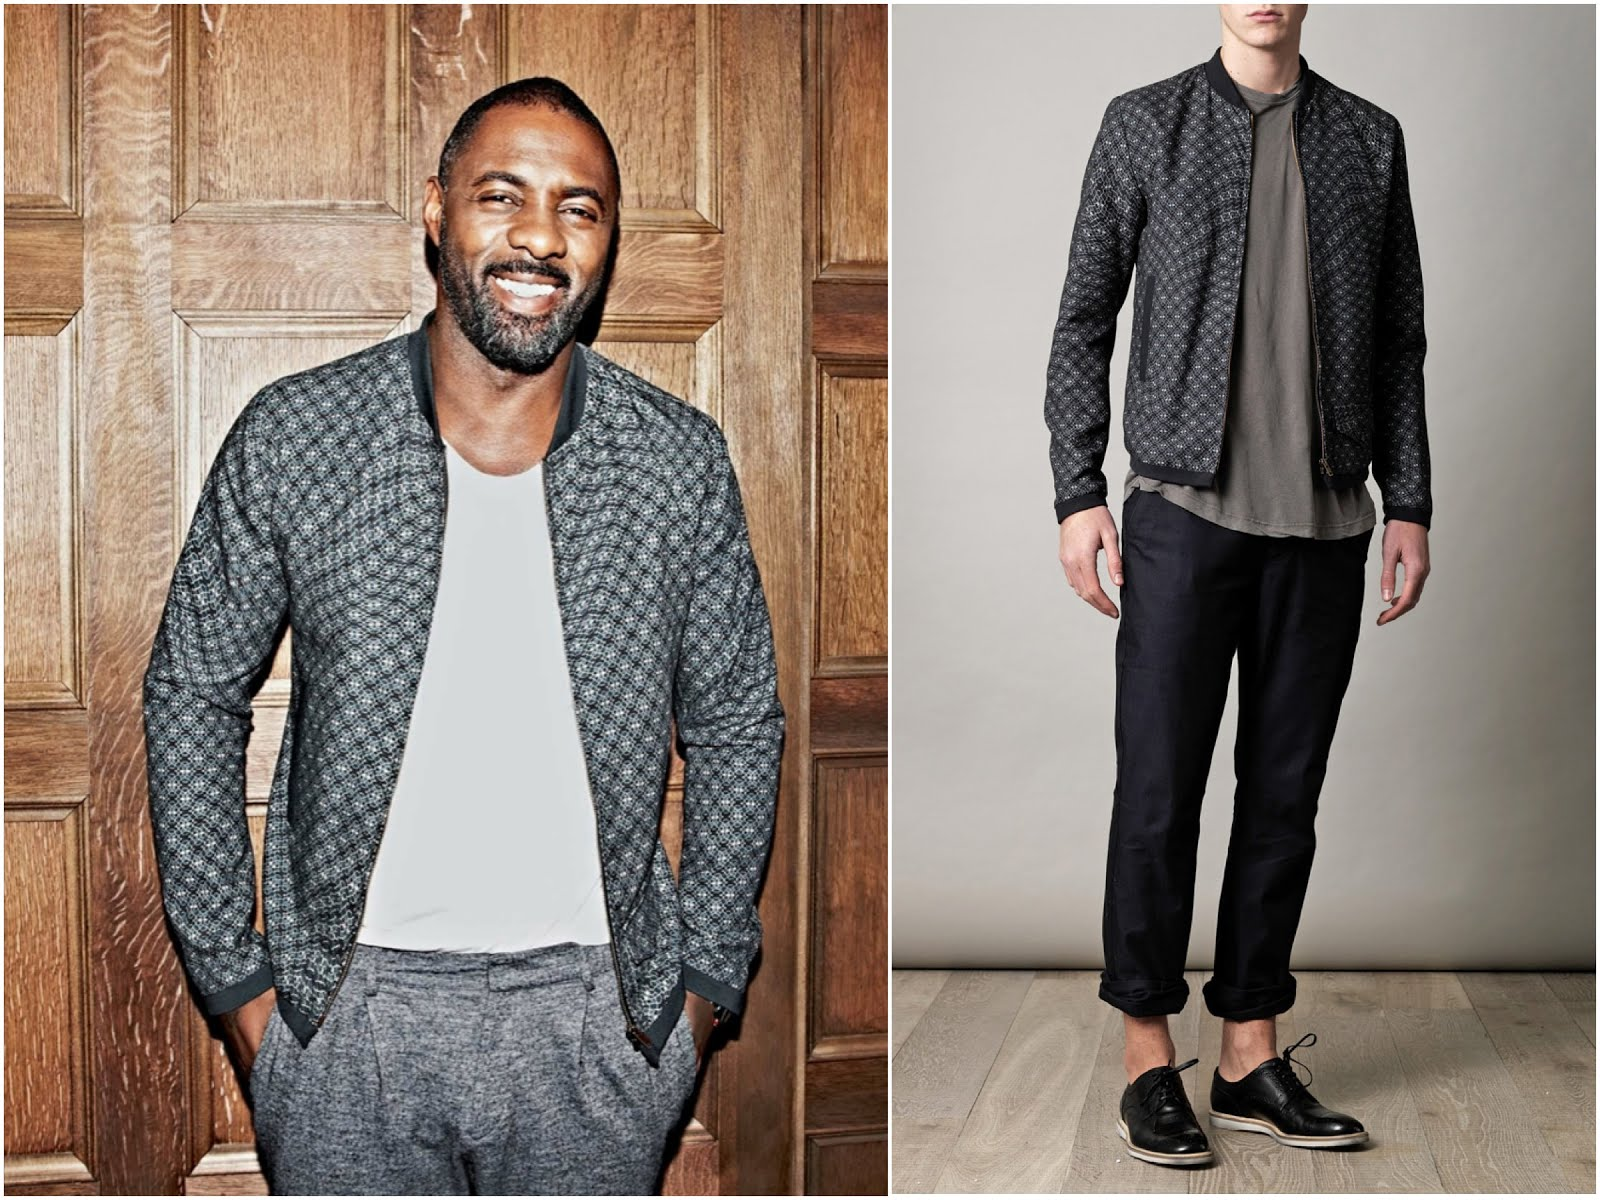 Idris Elba in Carven Menswear Dual Weave sweater and Dolce Gabbana printed bomber jacket - ES Magazine